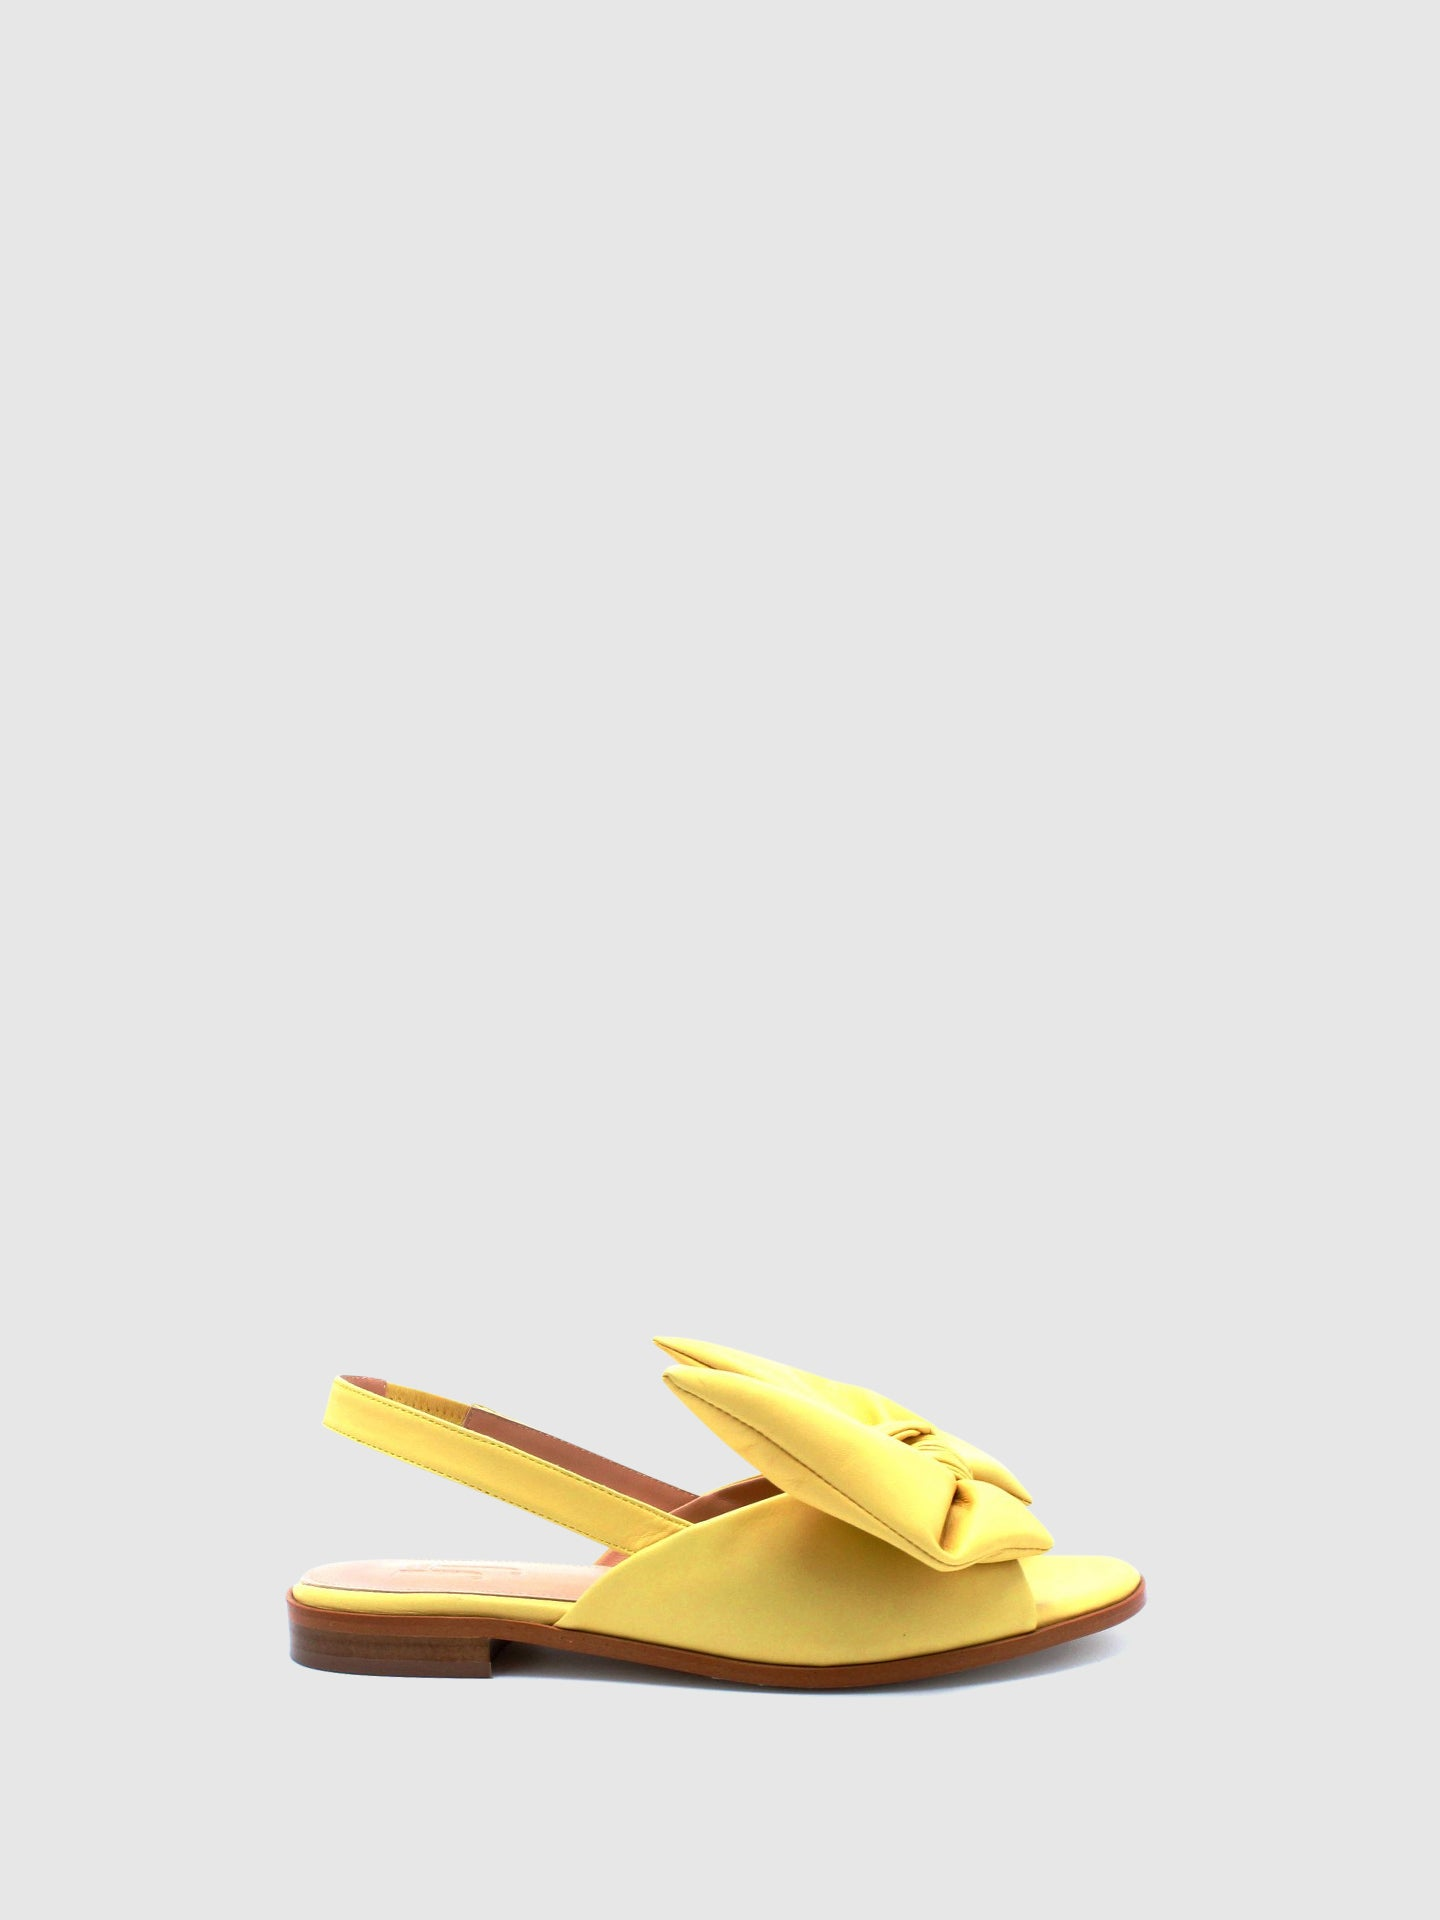 JJ Heitor Yellow Leather Flat Sandals